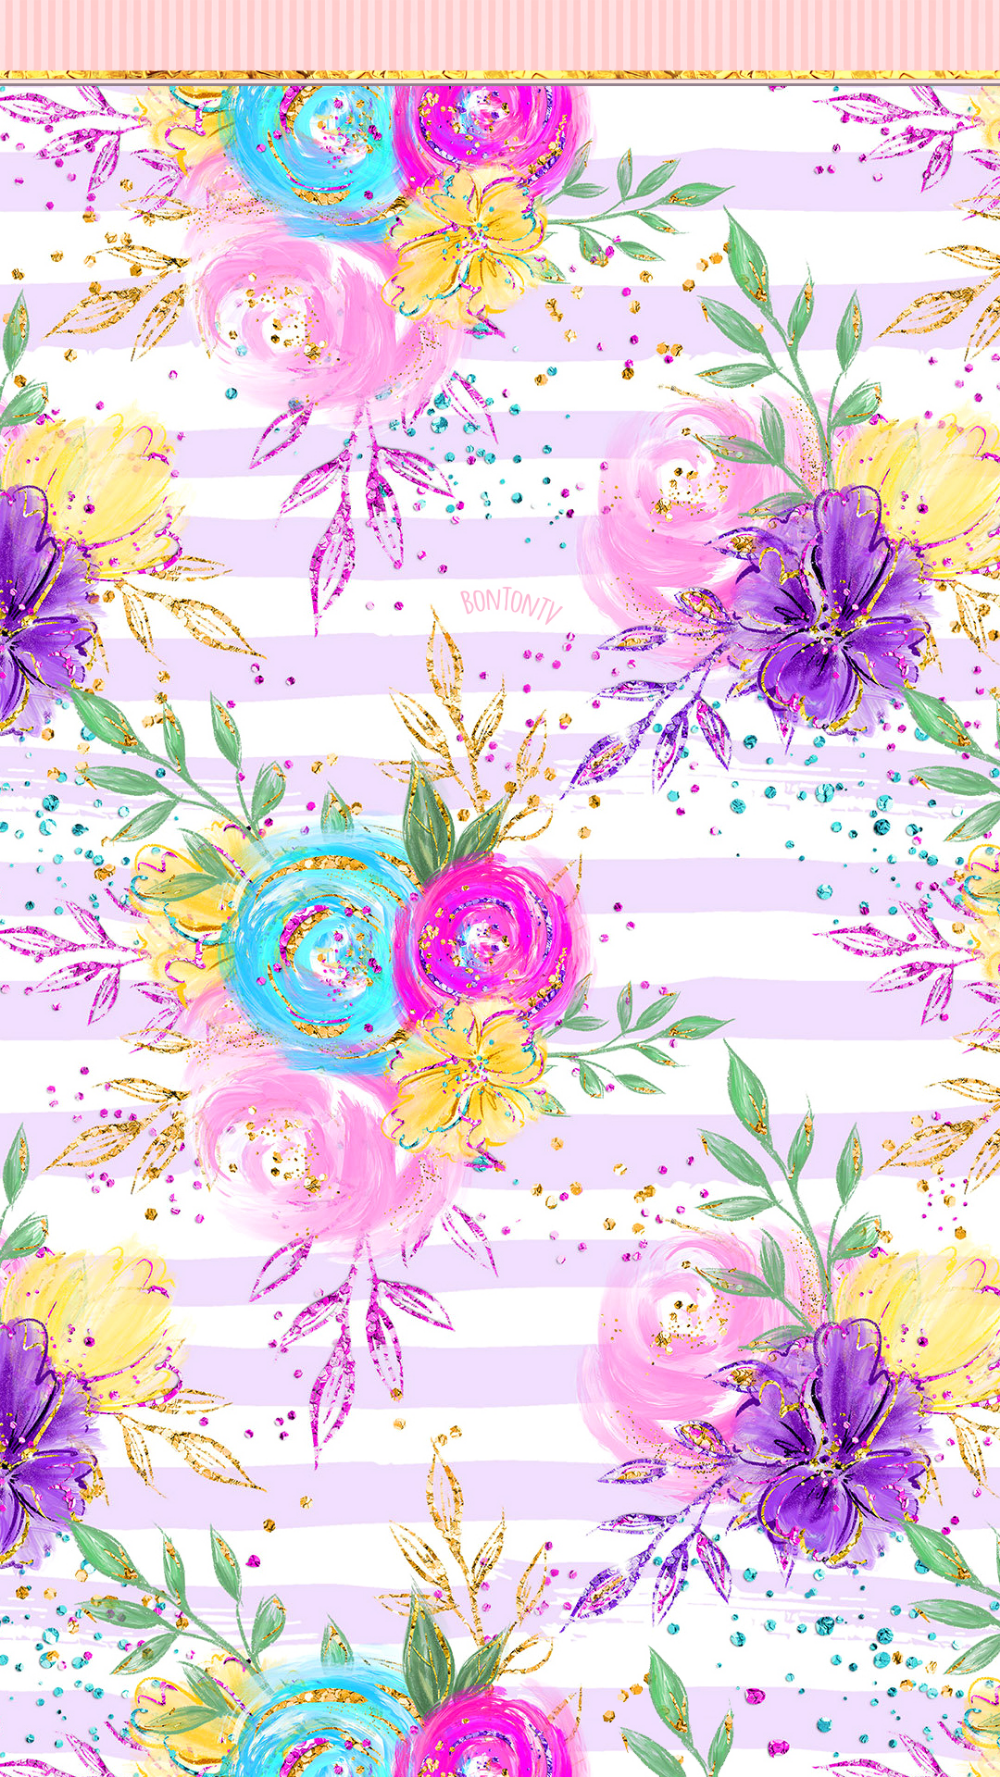 Phone Wallpapers Hd Fairy Magic Glitter Flowers By Bonton Tv Free Backgrounds 1080x1920 Wal Cute Flower Wallpapers Flower Phone Wallpaper Flowery Wallpaper